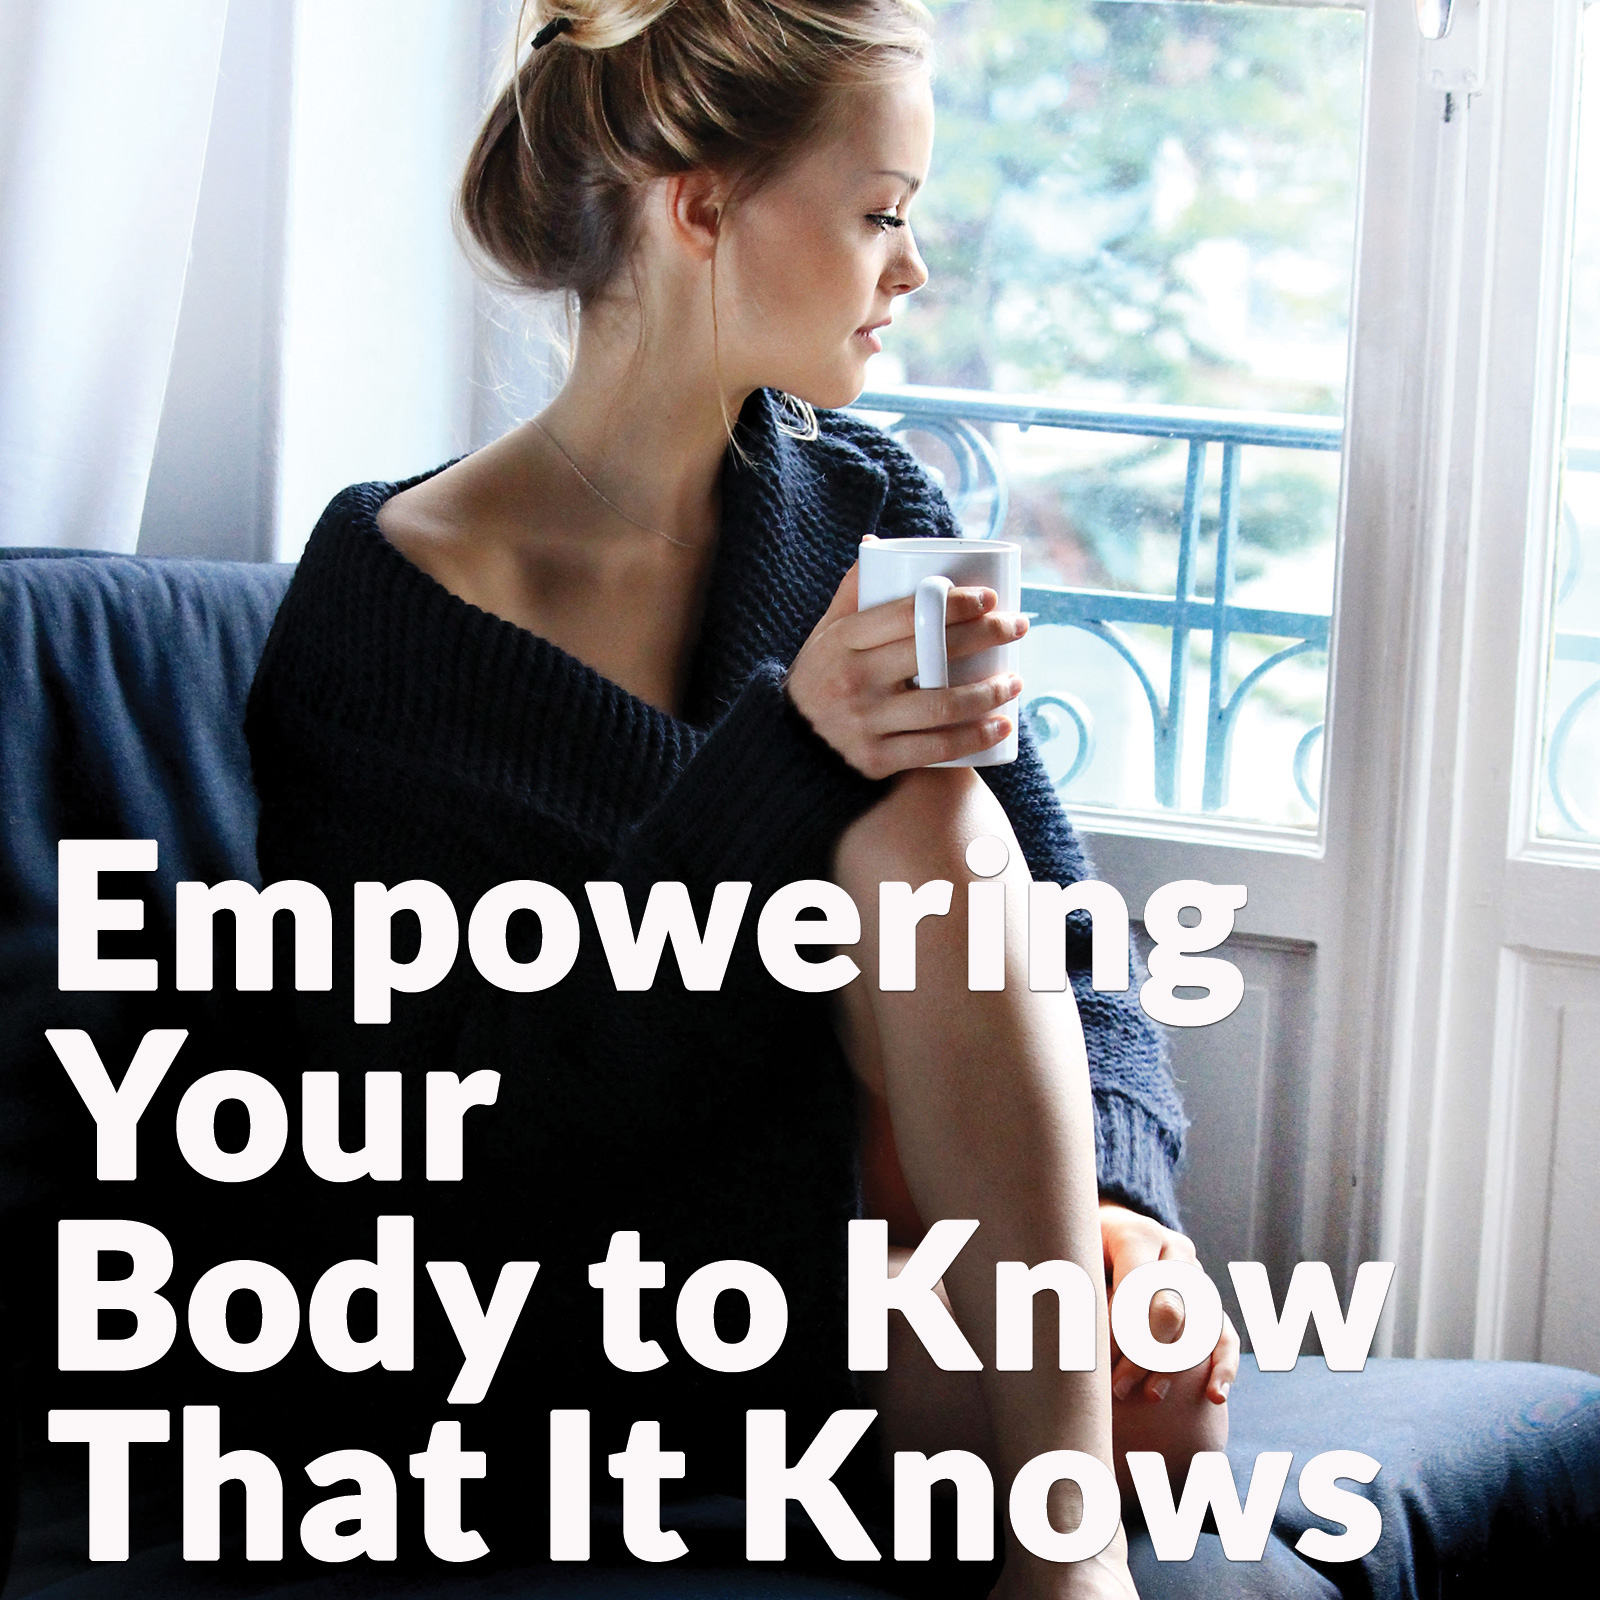 Replay: Empowering Your Body to Know That It Knows